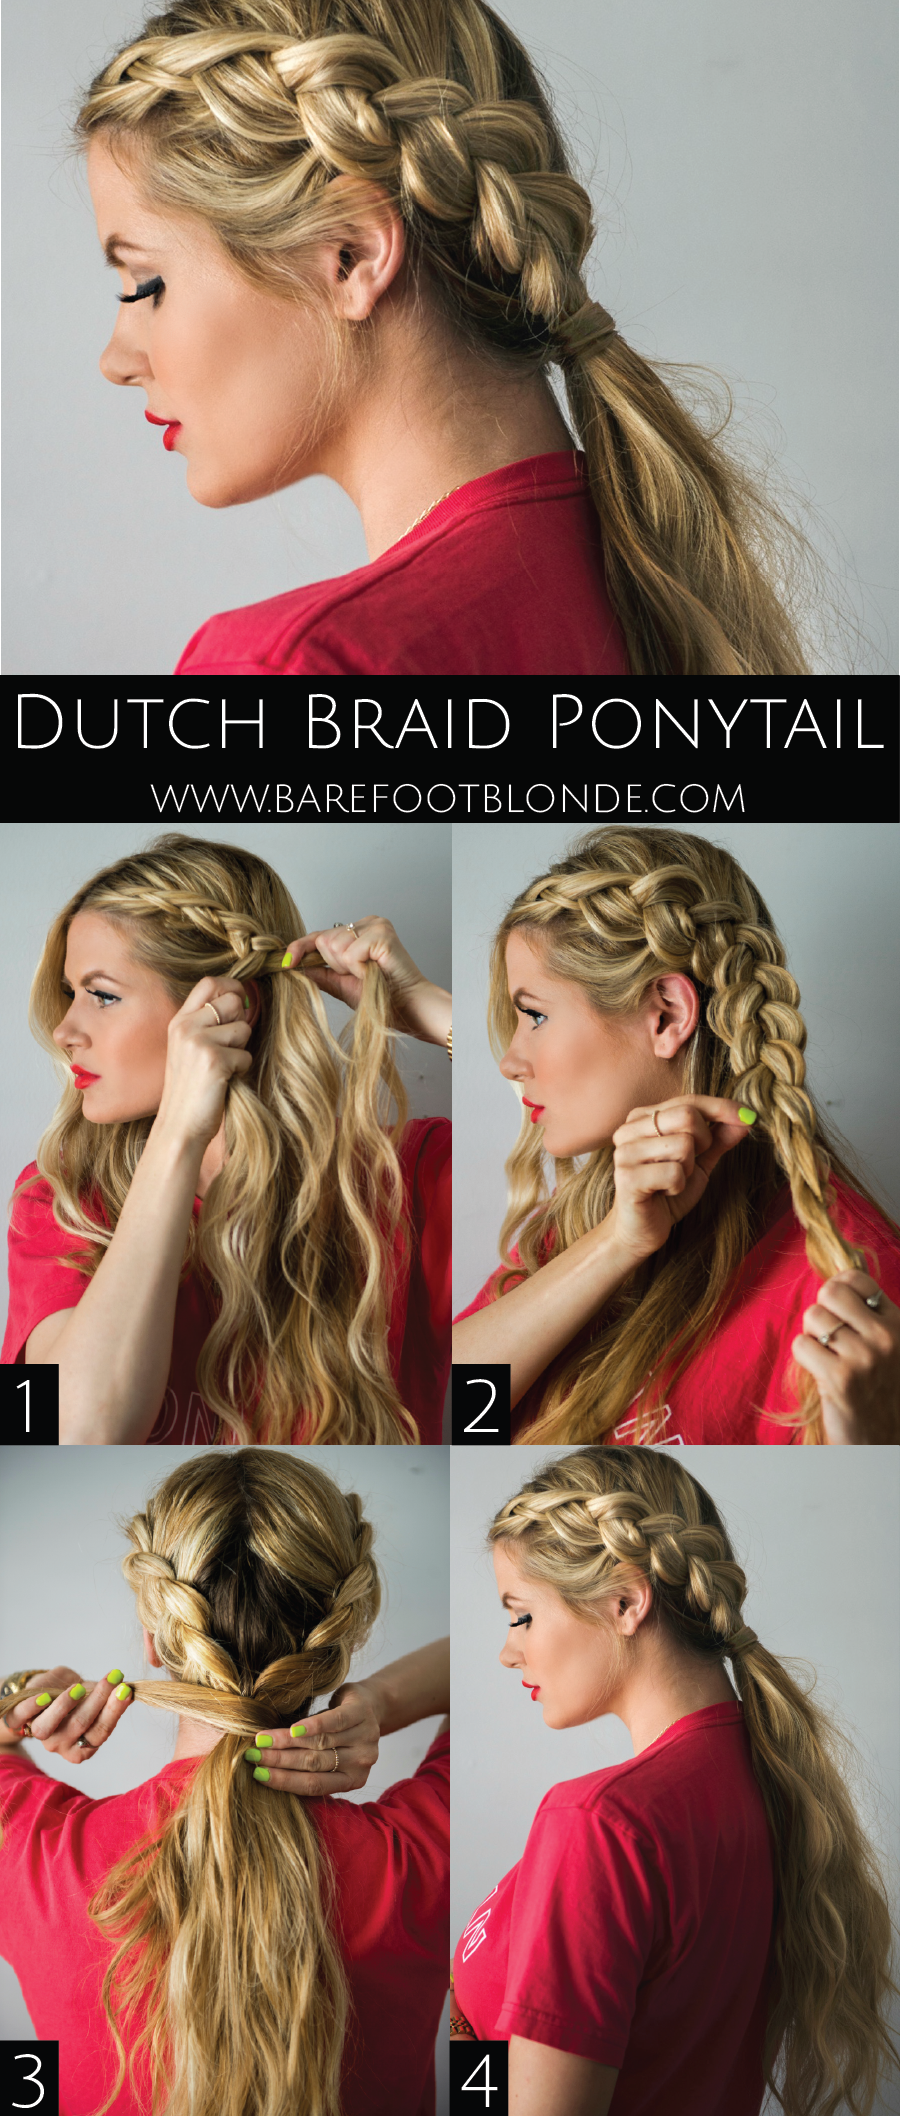 Dutch Braided Headband: Barefoot Blonde By Amber Fillerup Clark